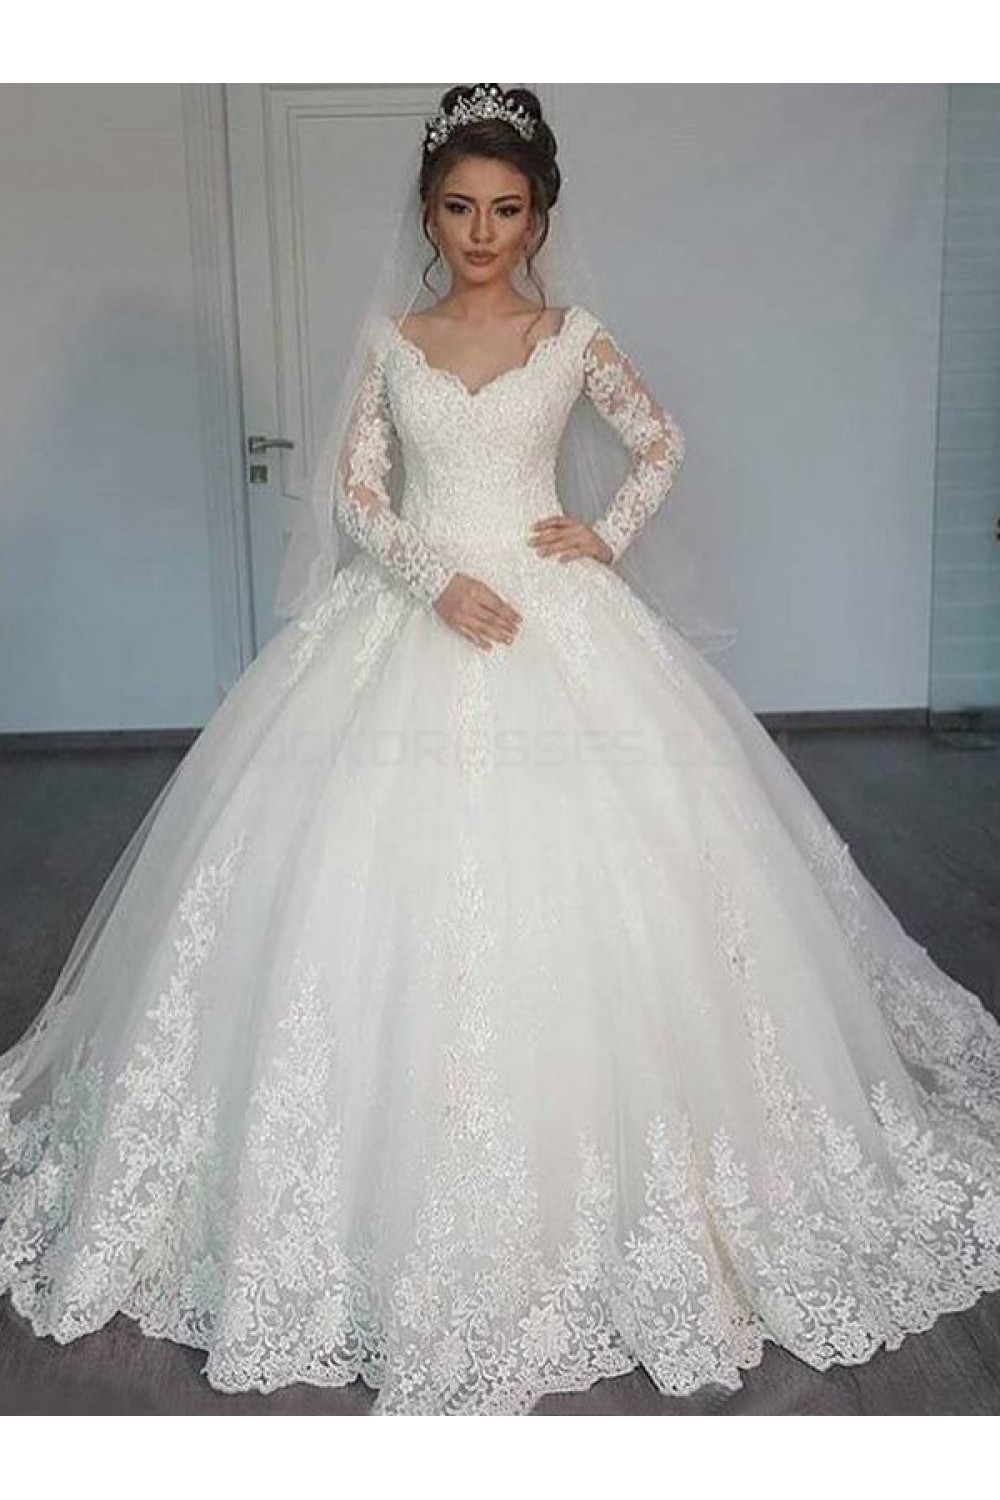 Bridal Ball Gown V Neck Lace Long Sleeves Wedding Dresses Gowns 3030126